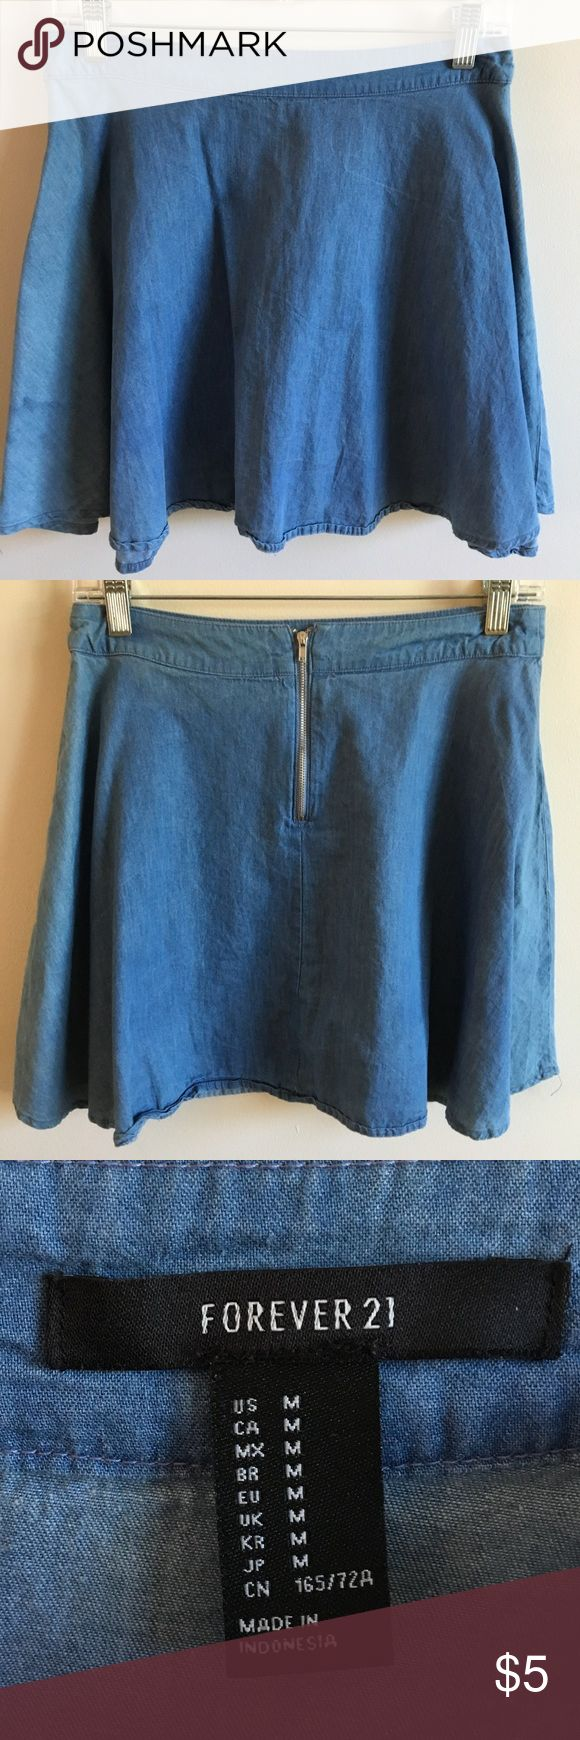 Faux Denim Skater Skirt Skater skirt that has denim-like material with medium/light wash. Very little fading but it adds to the appearance of the skirt. No elasticated waistband, zip-up back. Great condition. Forever 21 Skirts Circle & Skater